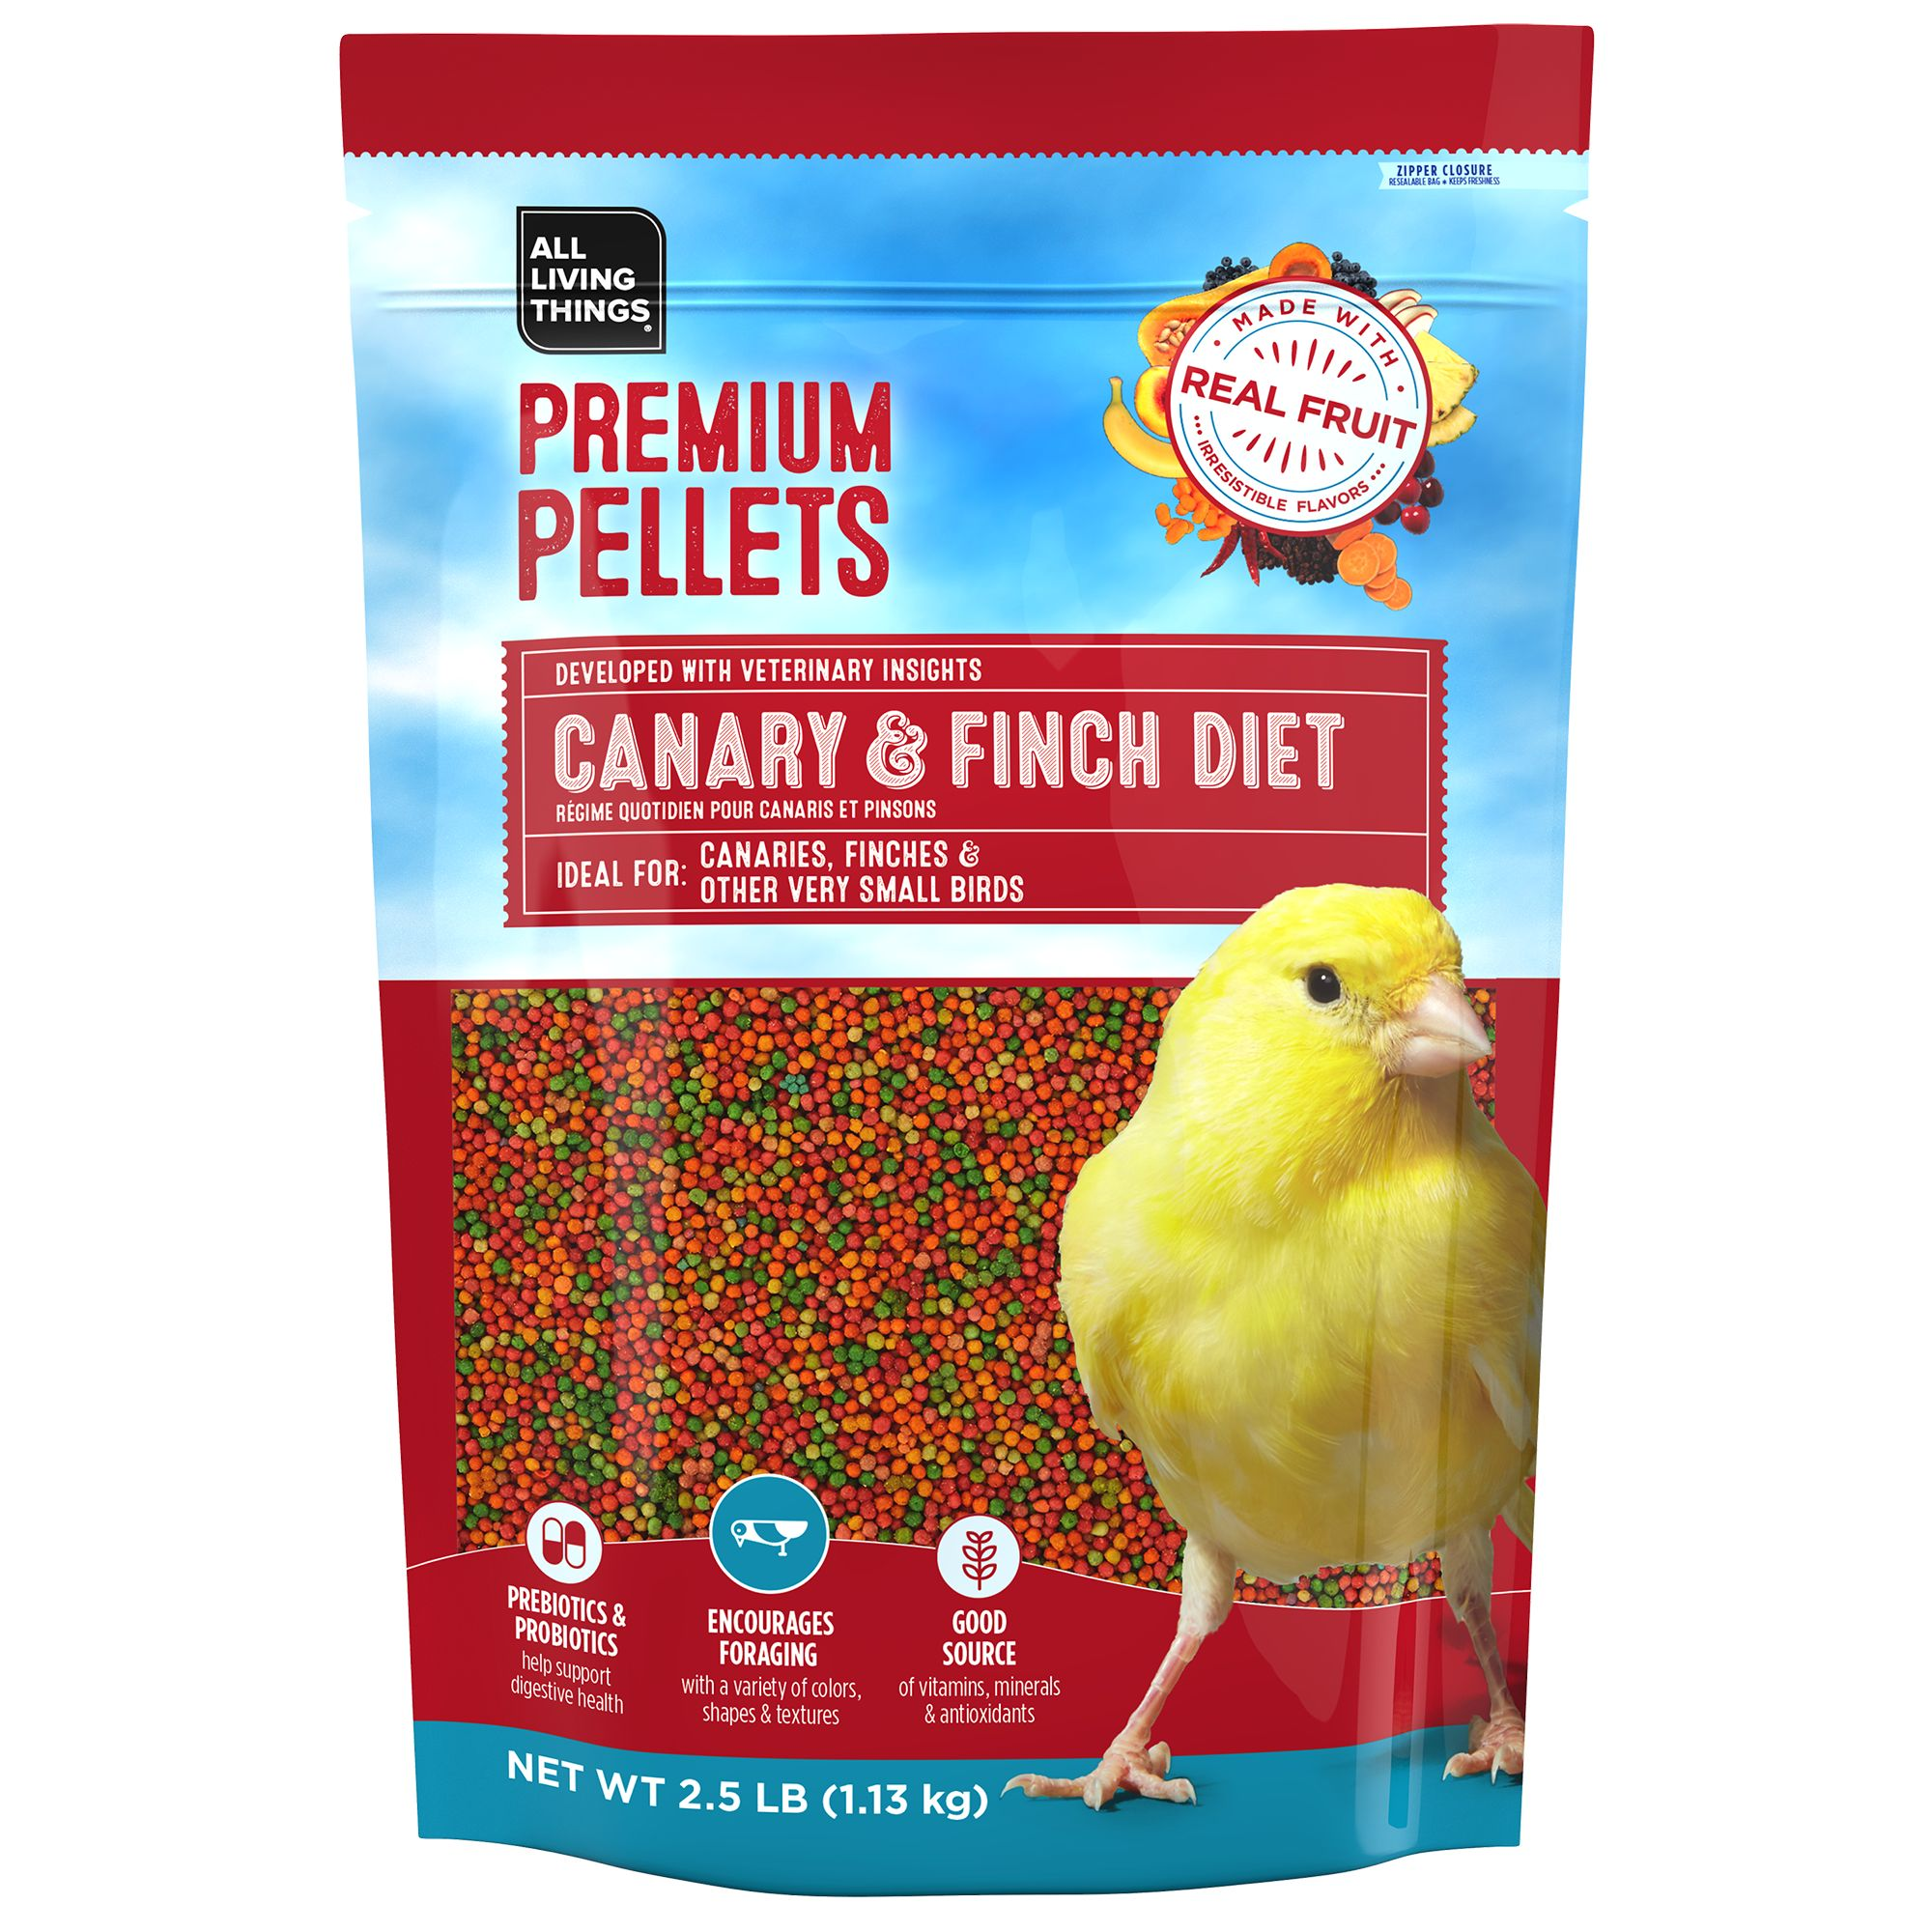 All Living Things® Premium Pellets Canary & Finch Diet